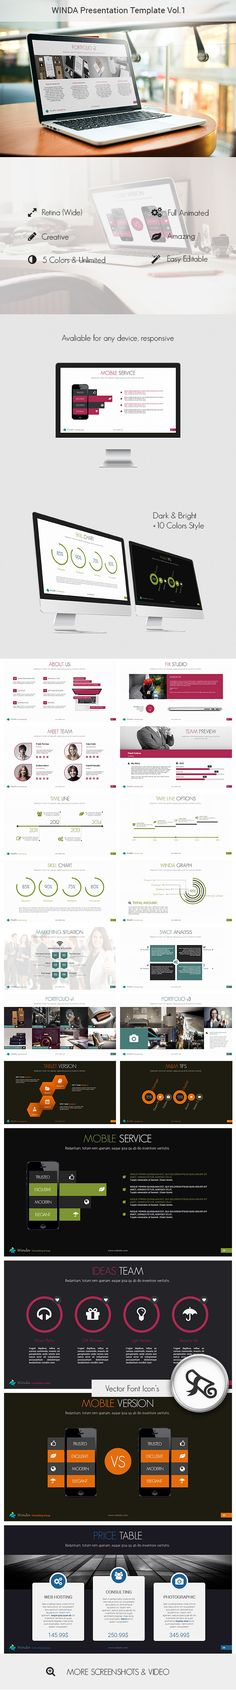 GraphicRiver PowerPoint Calendar Template 2015-2016 From - powerpoint calendar template